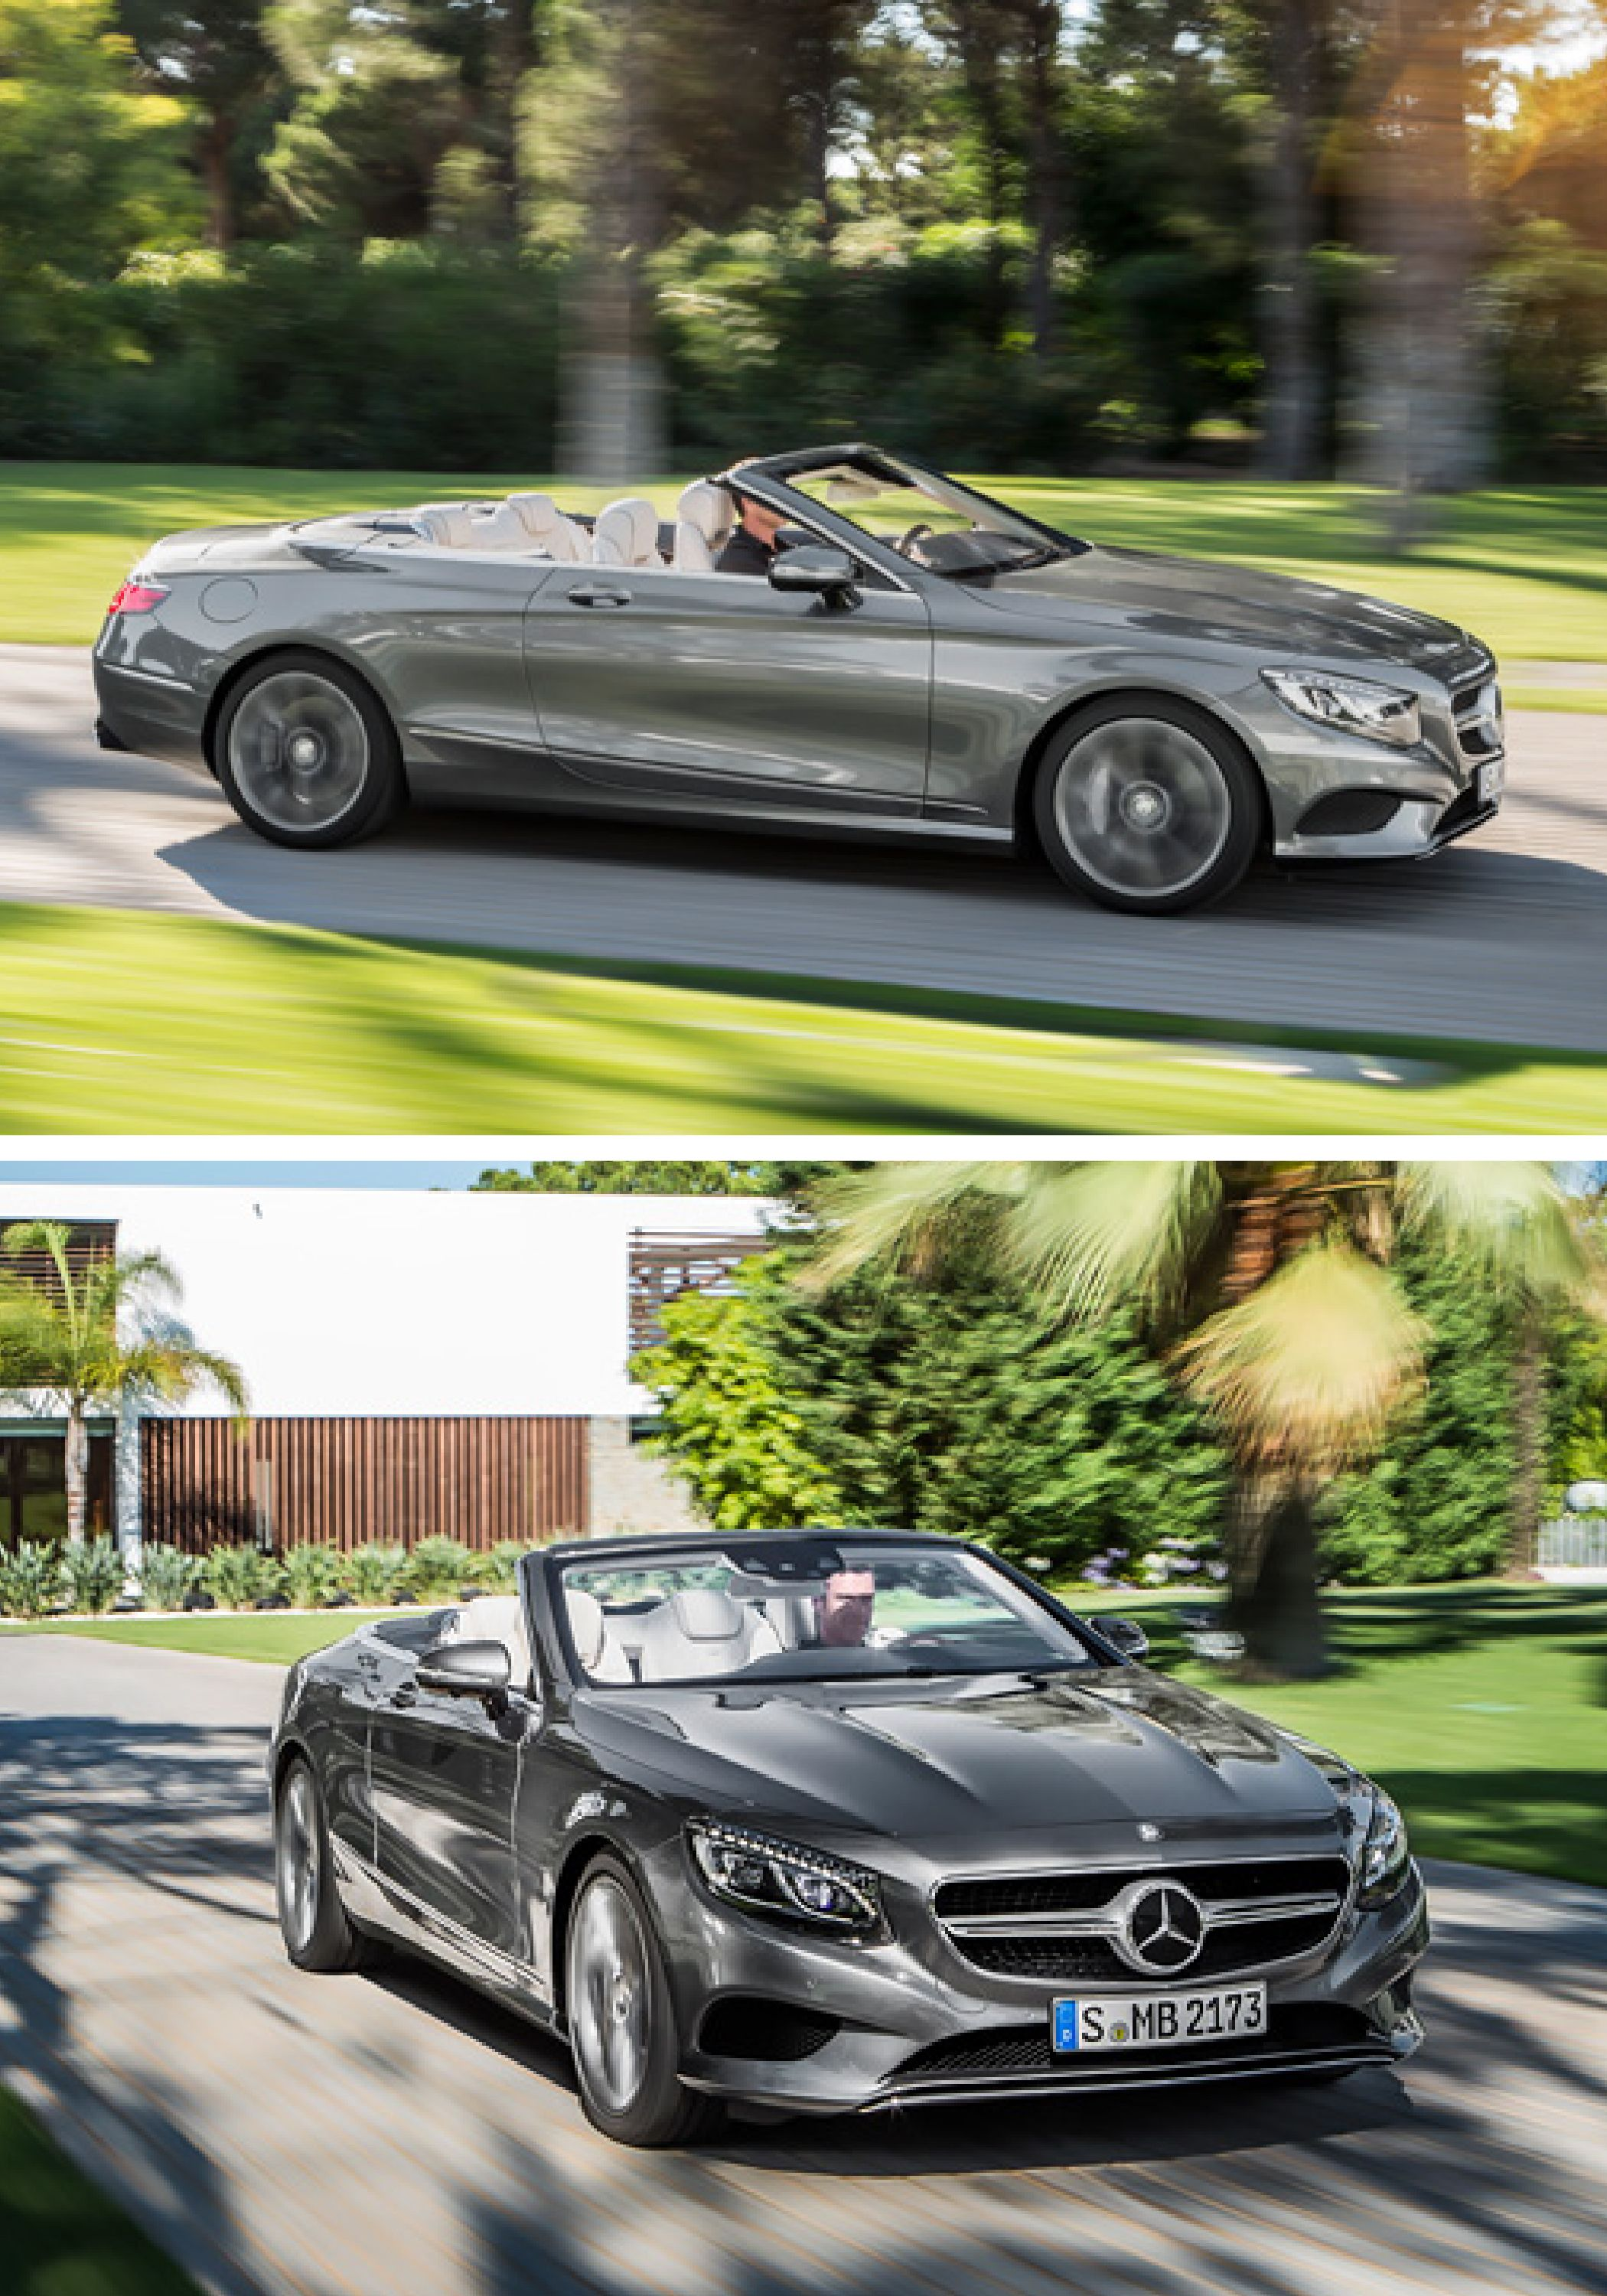 medium resolution of check out the sixth variant of the current s class family and the first open top luxury four seater from mercedes benz